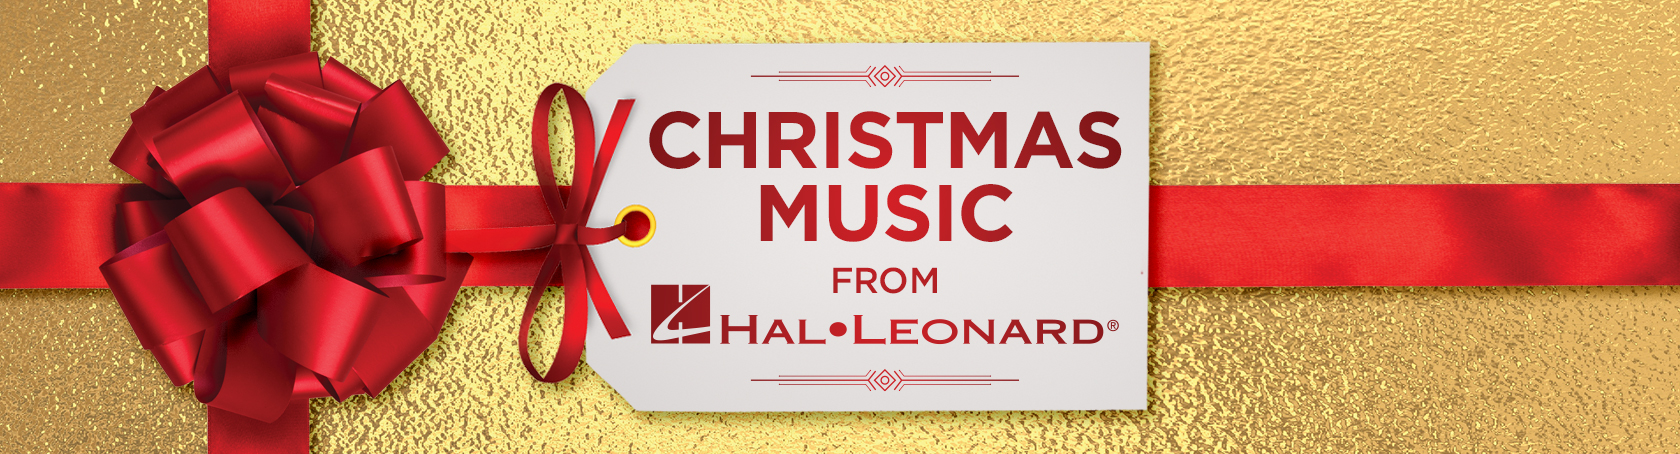 Banner for 'Tis the Season to Make Beautiful Music!